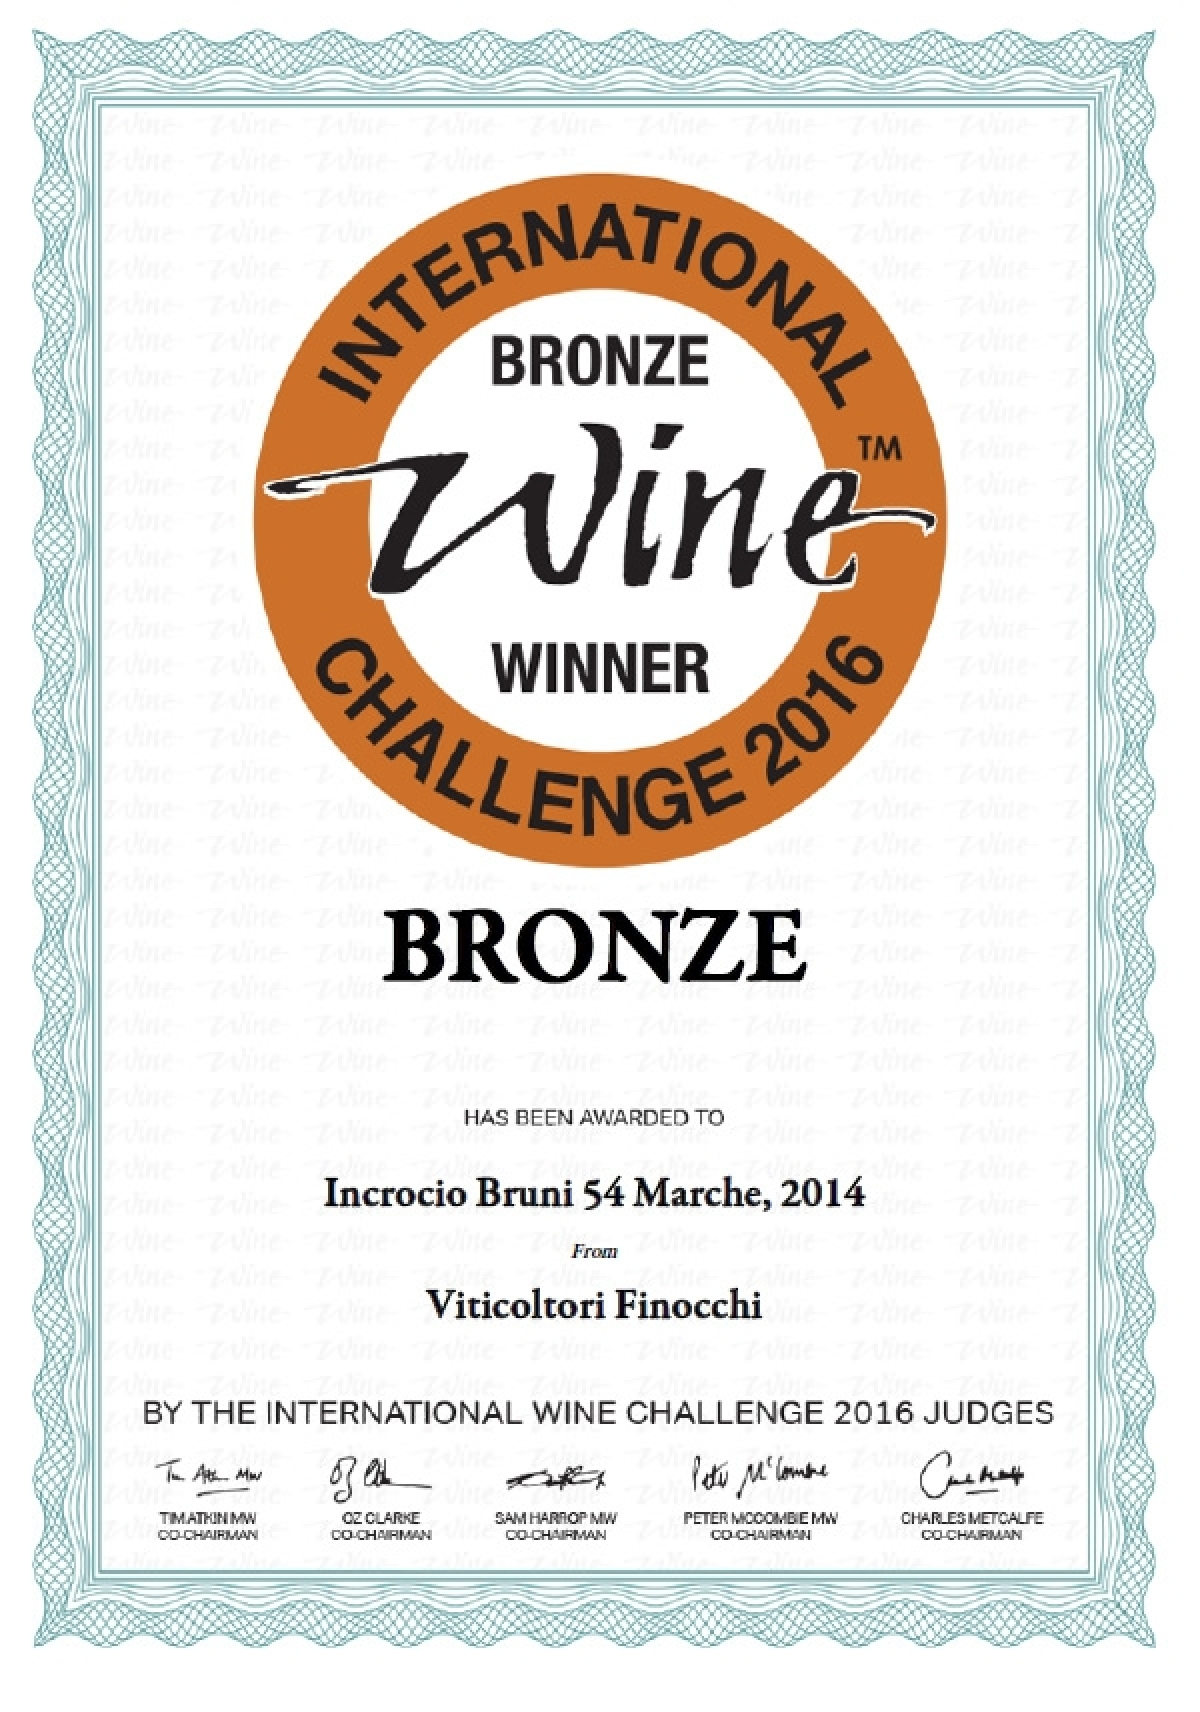 Medaglia di Bronzo all'International Wine Challenge 2016 - Incrocio Bruni 54